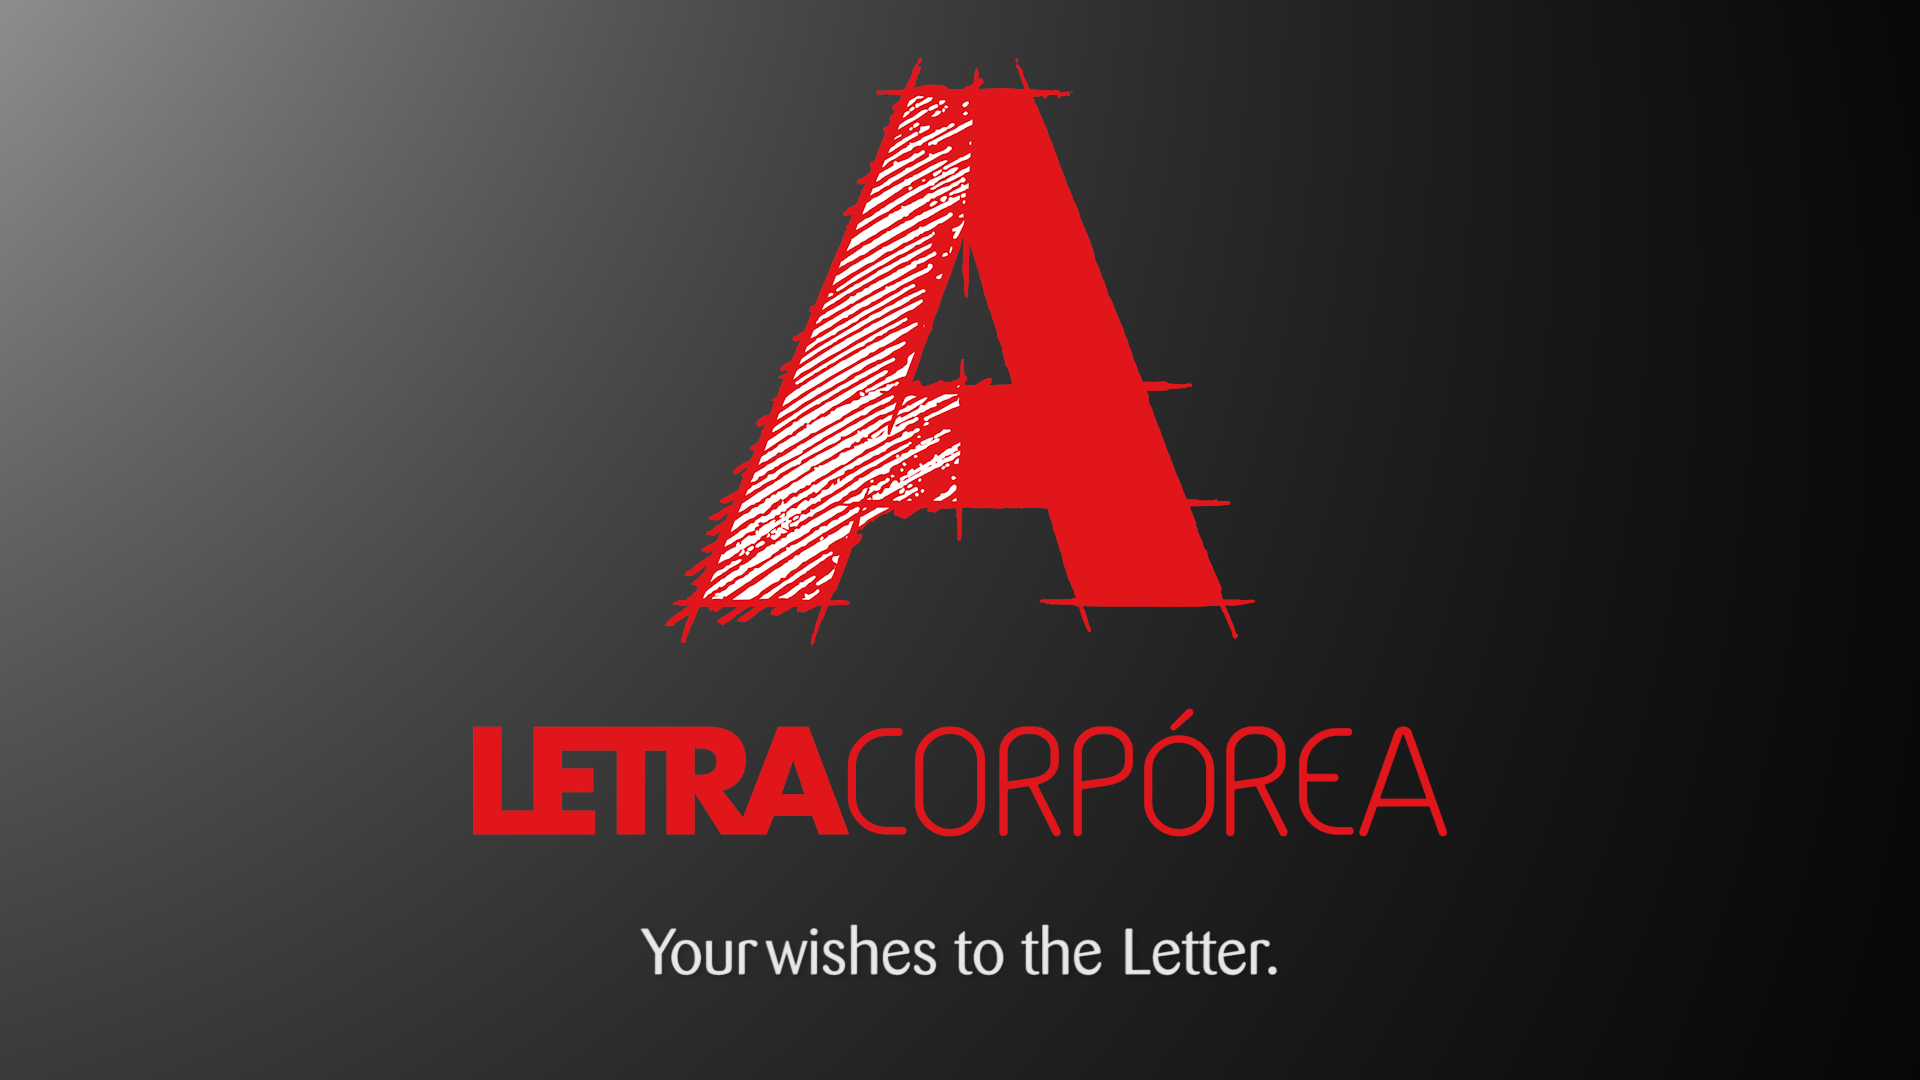 Letra Corporea - Your wishes to the letter